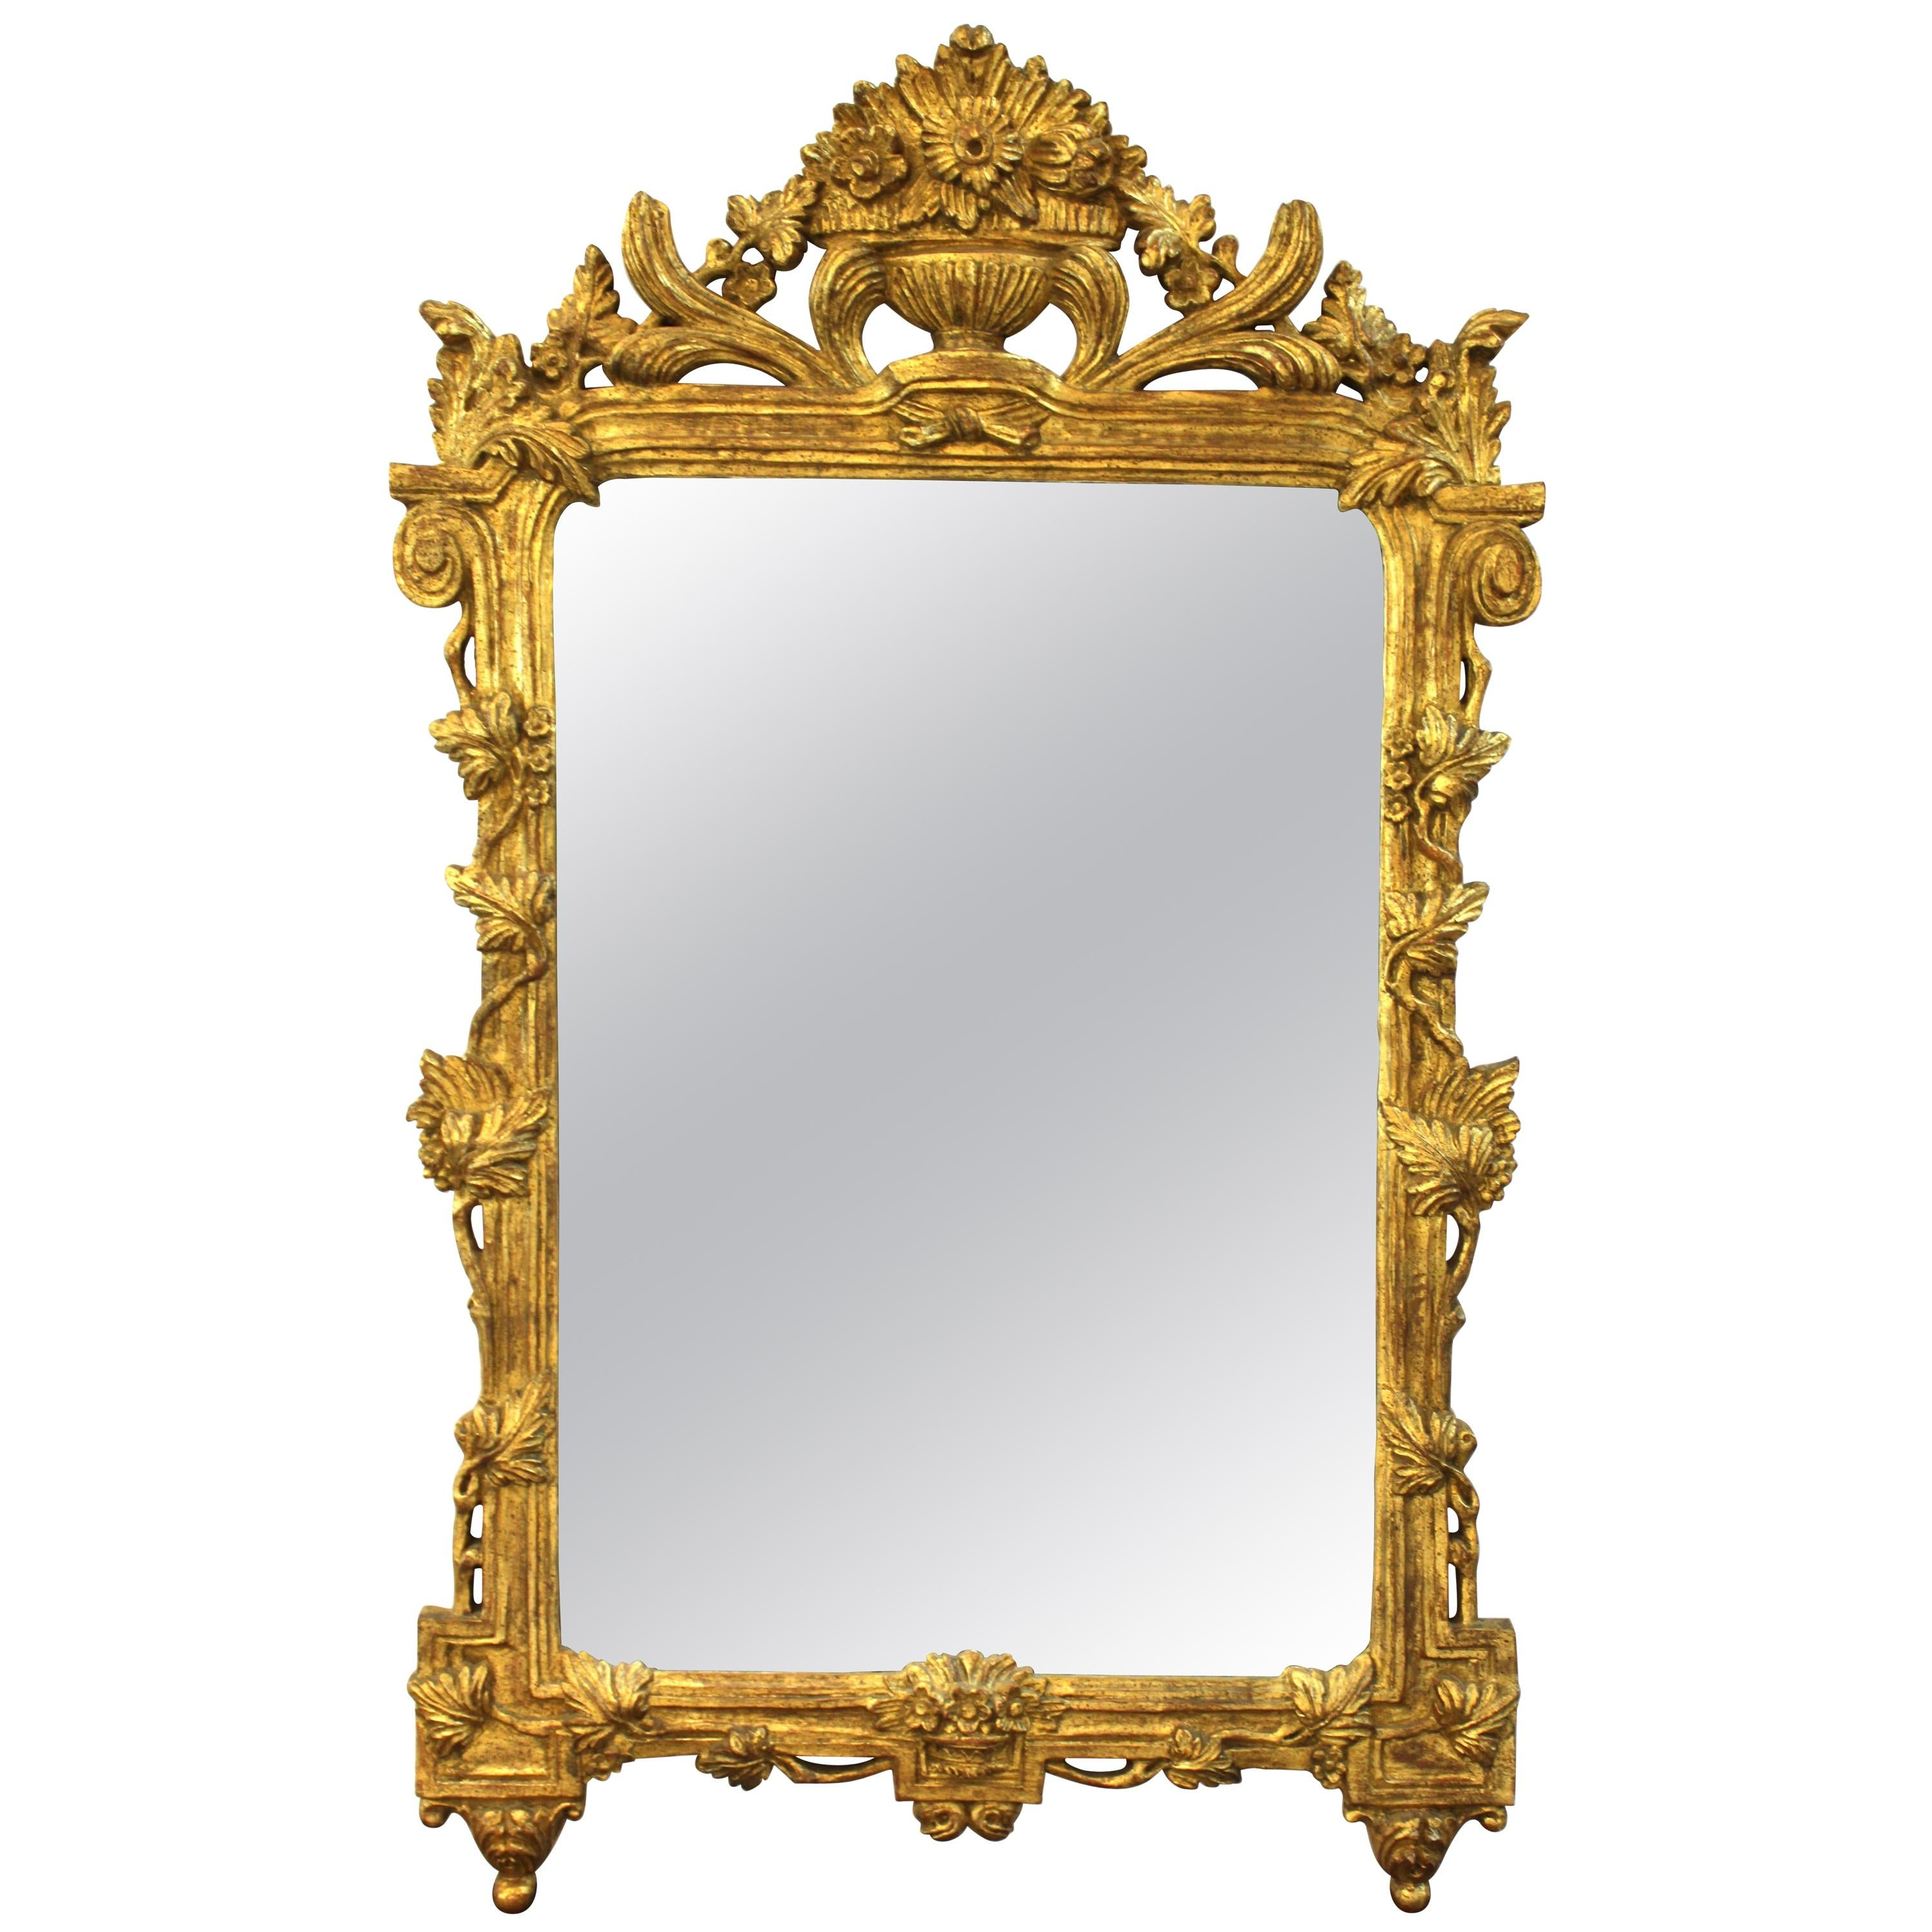 Italian Hollywood Regency Mirror With Neoclassical Revival Gilt Frame